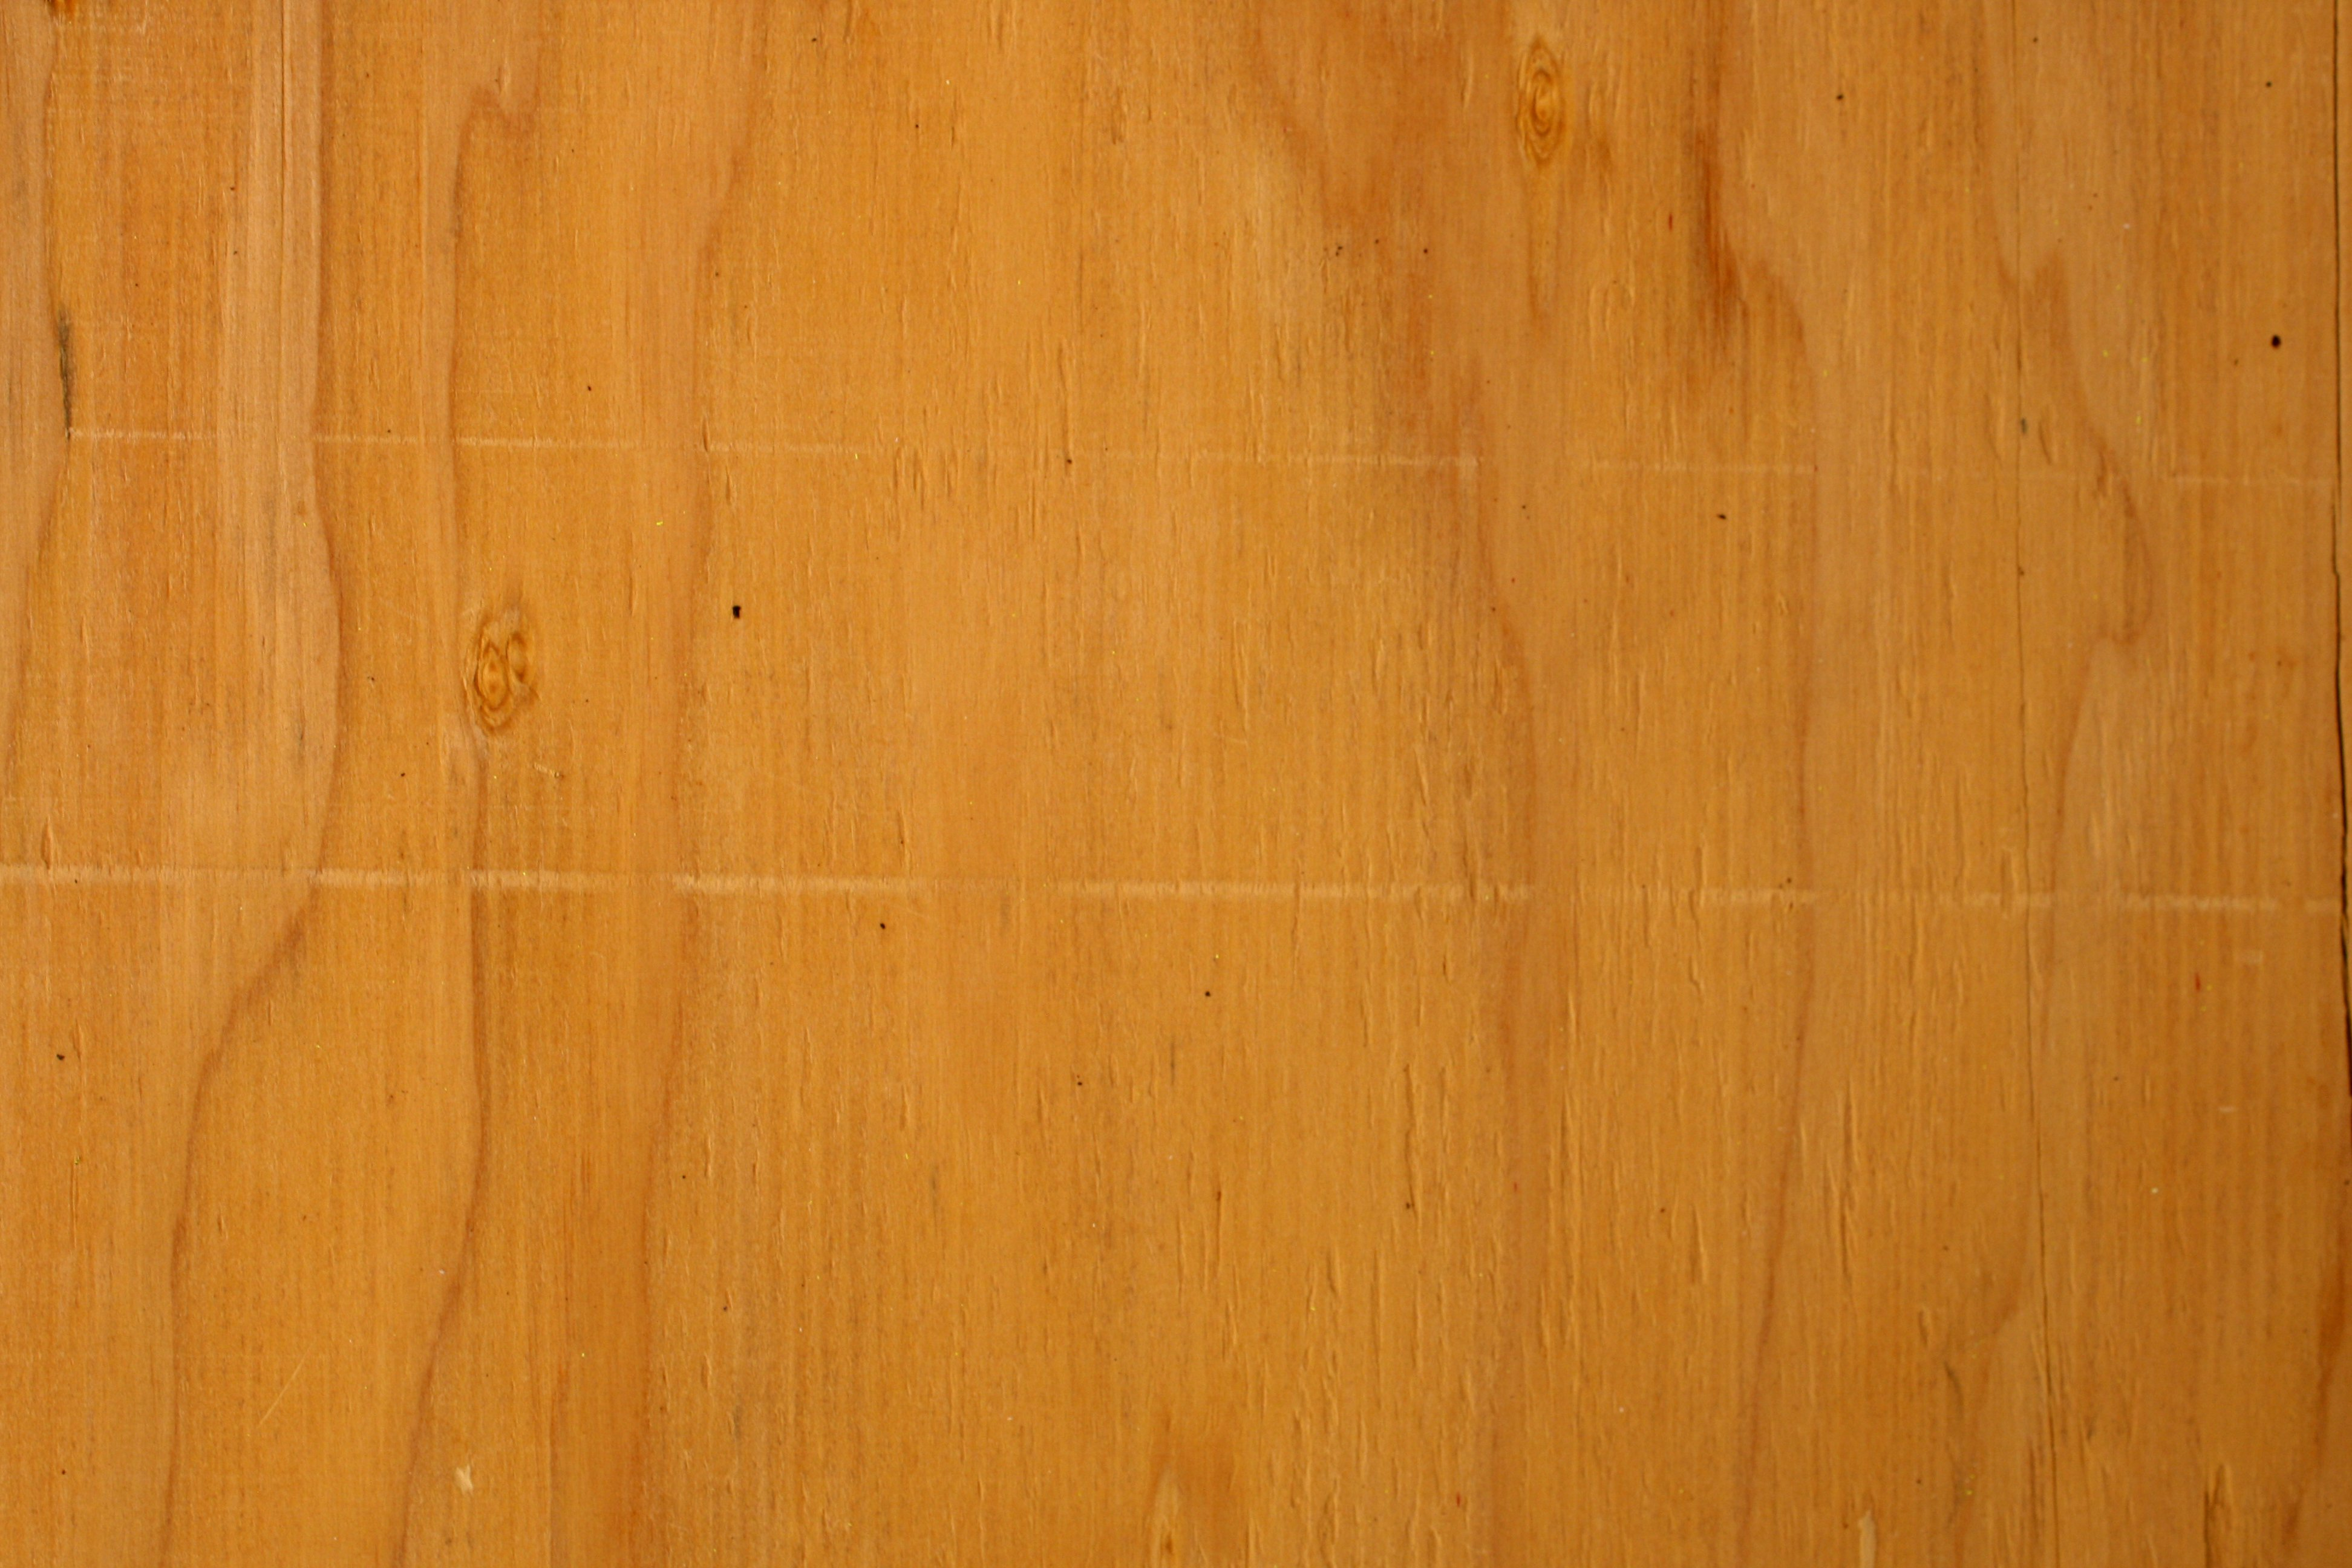 Delighful Wooden School Desk Top Plywood Close Up Texture With Inside Design Ideas